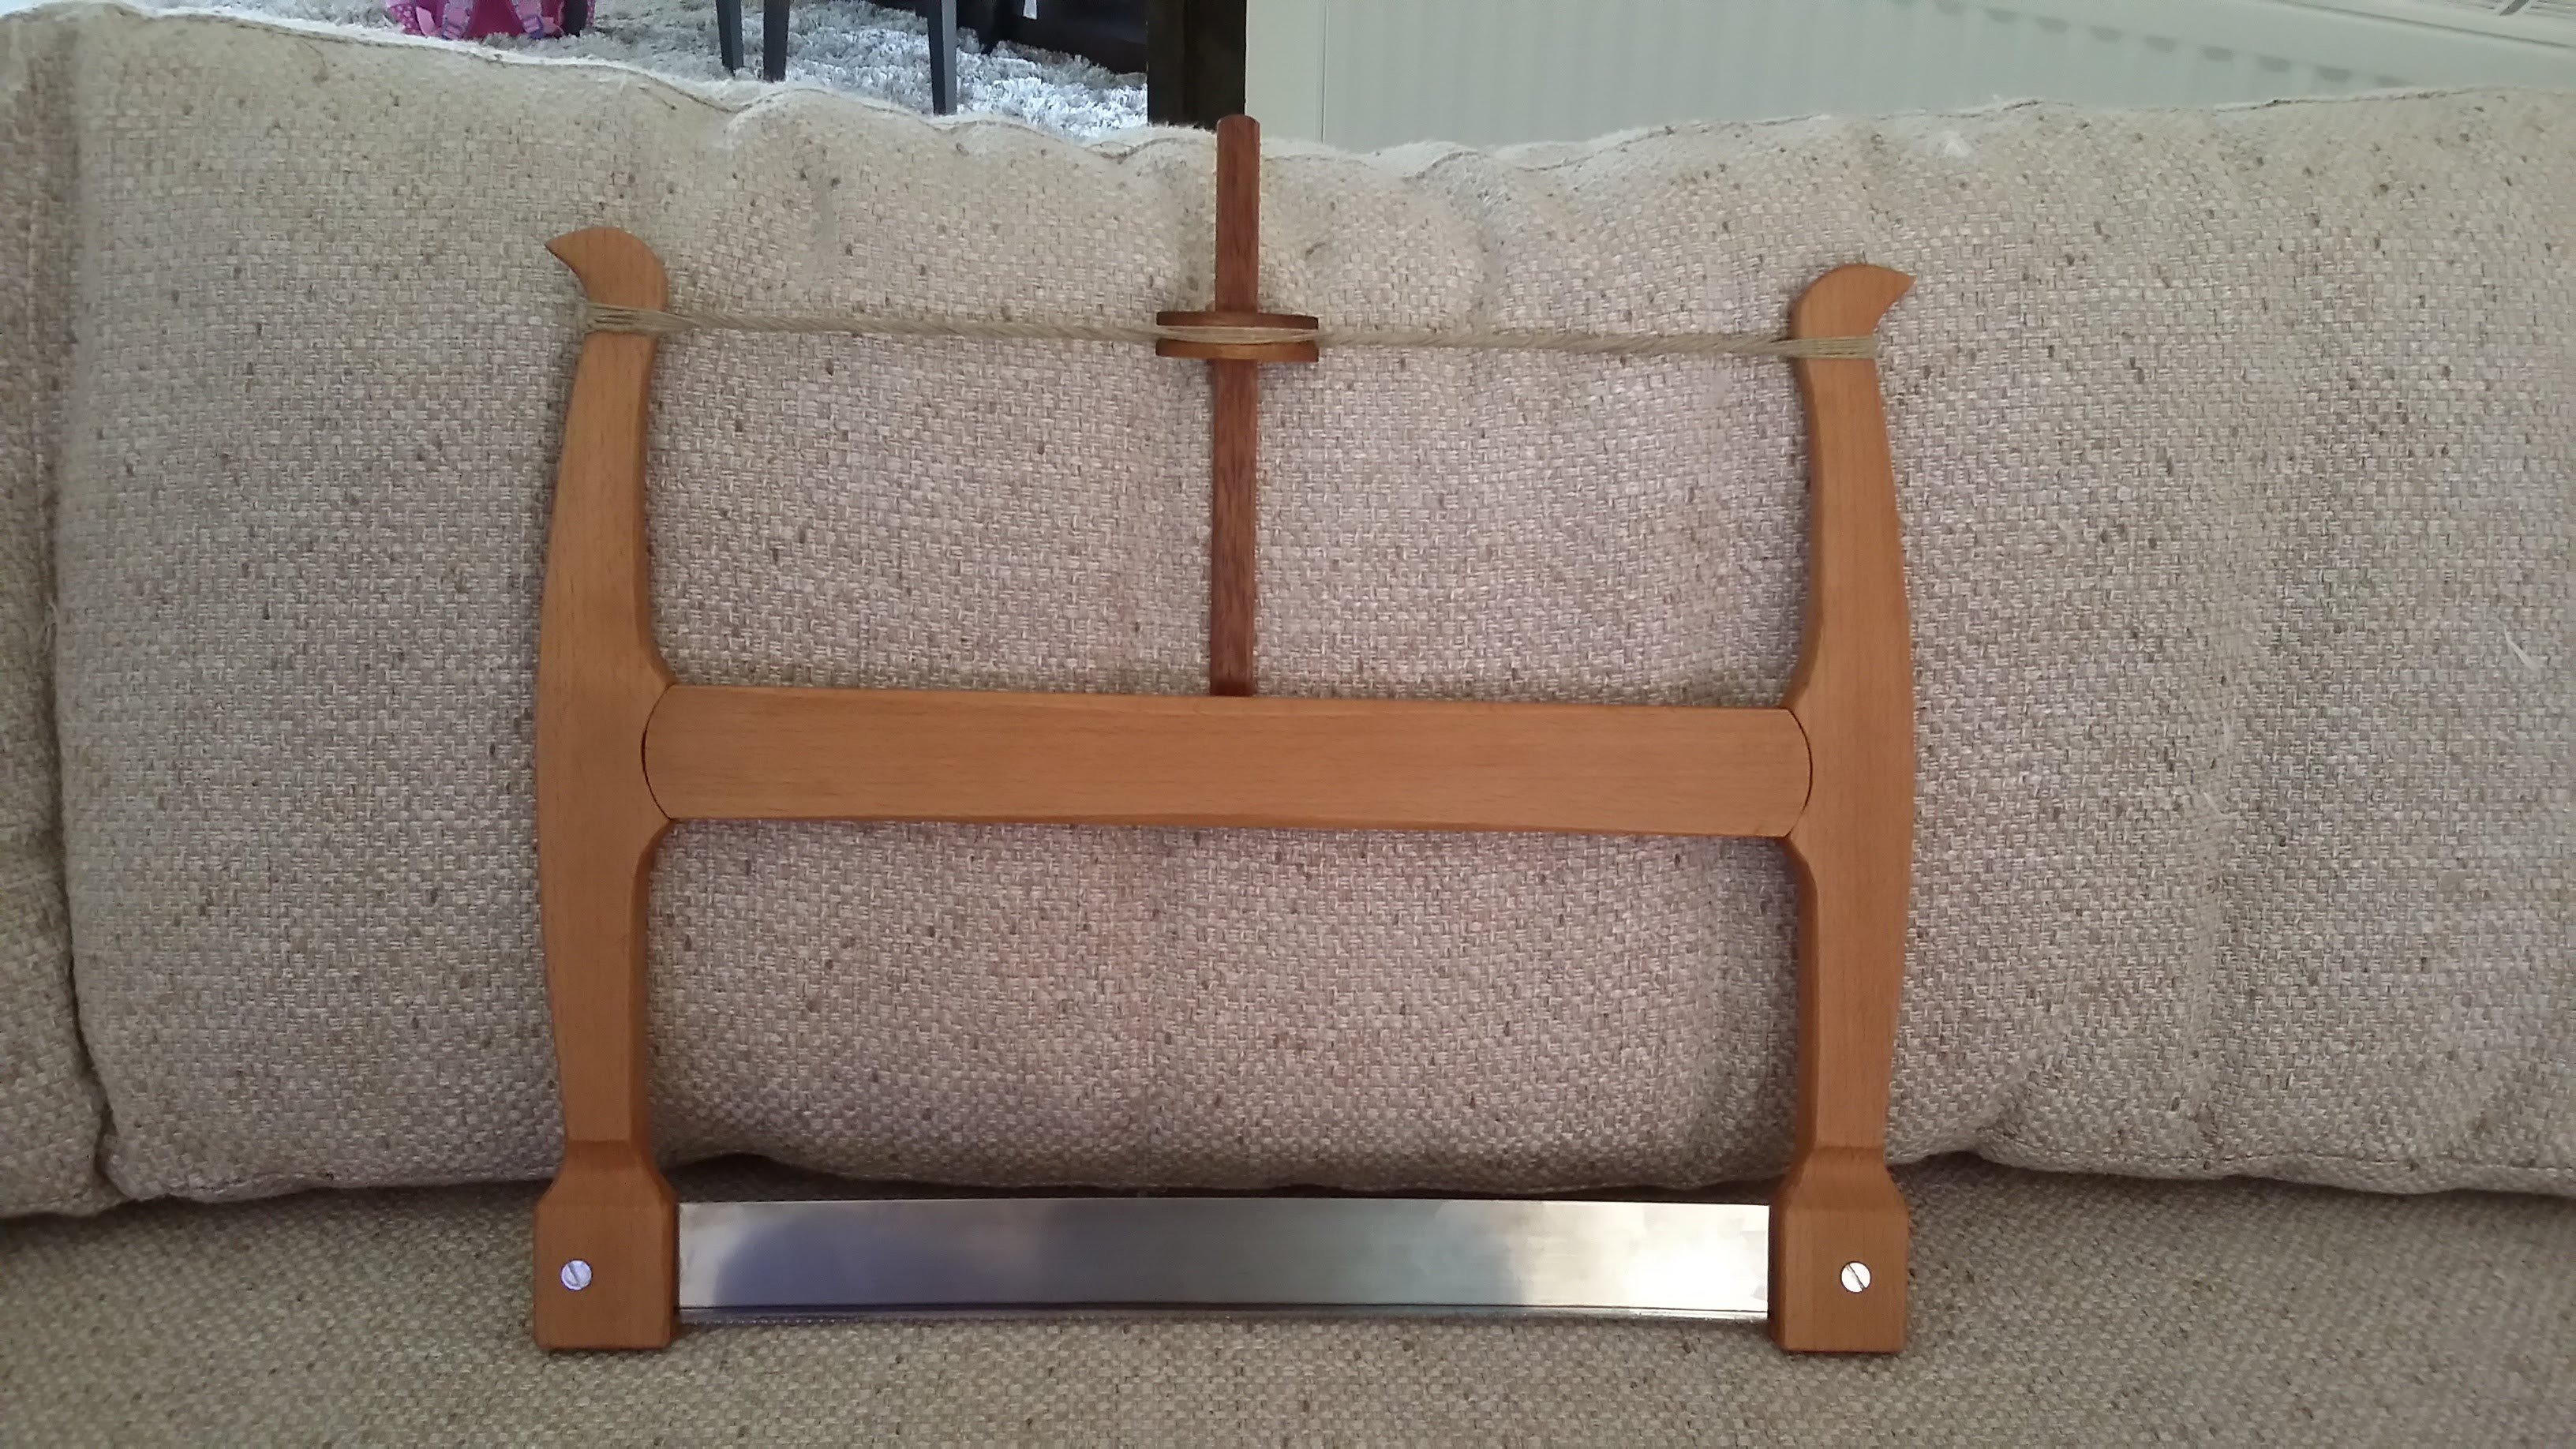 Frame Saw by Michael Chatzipetros